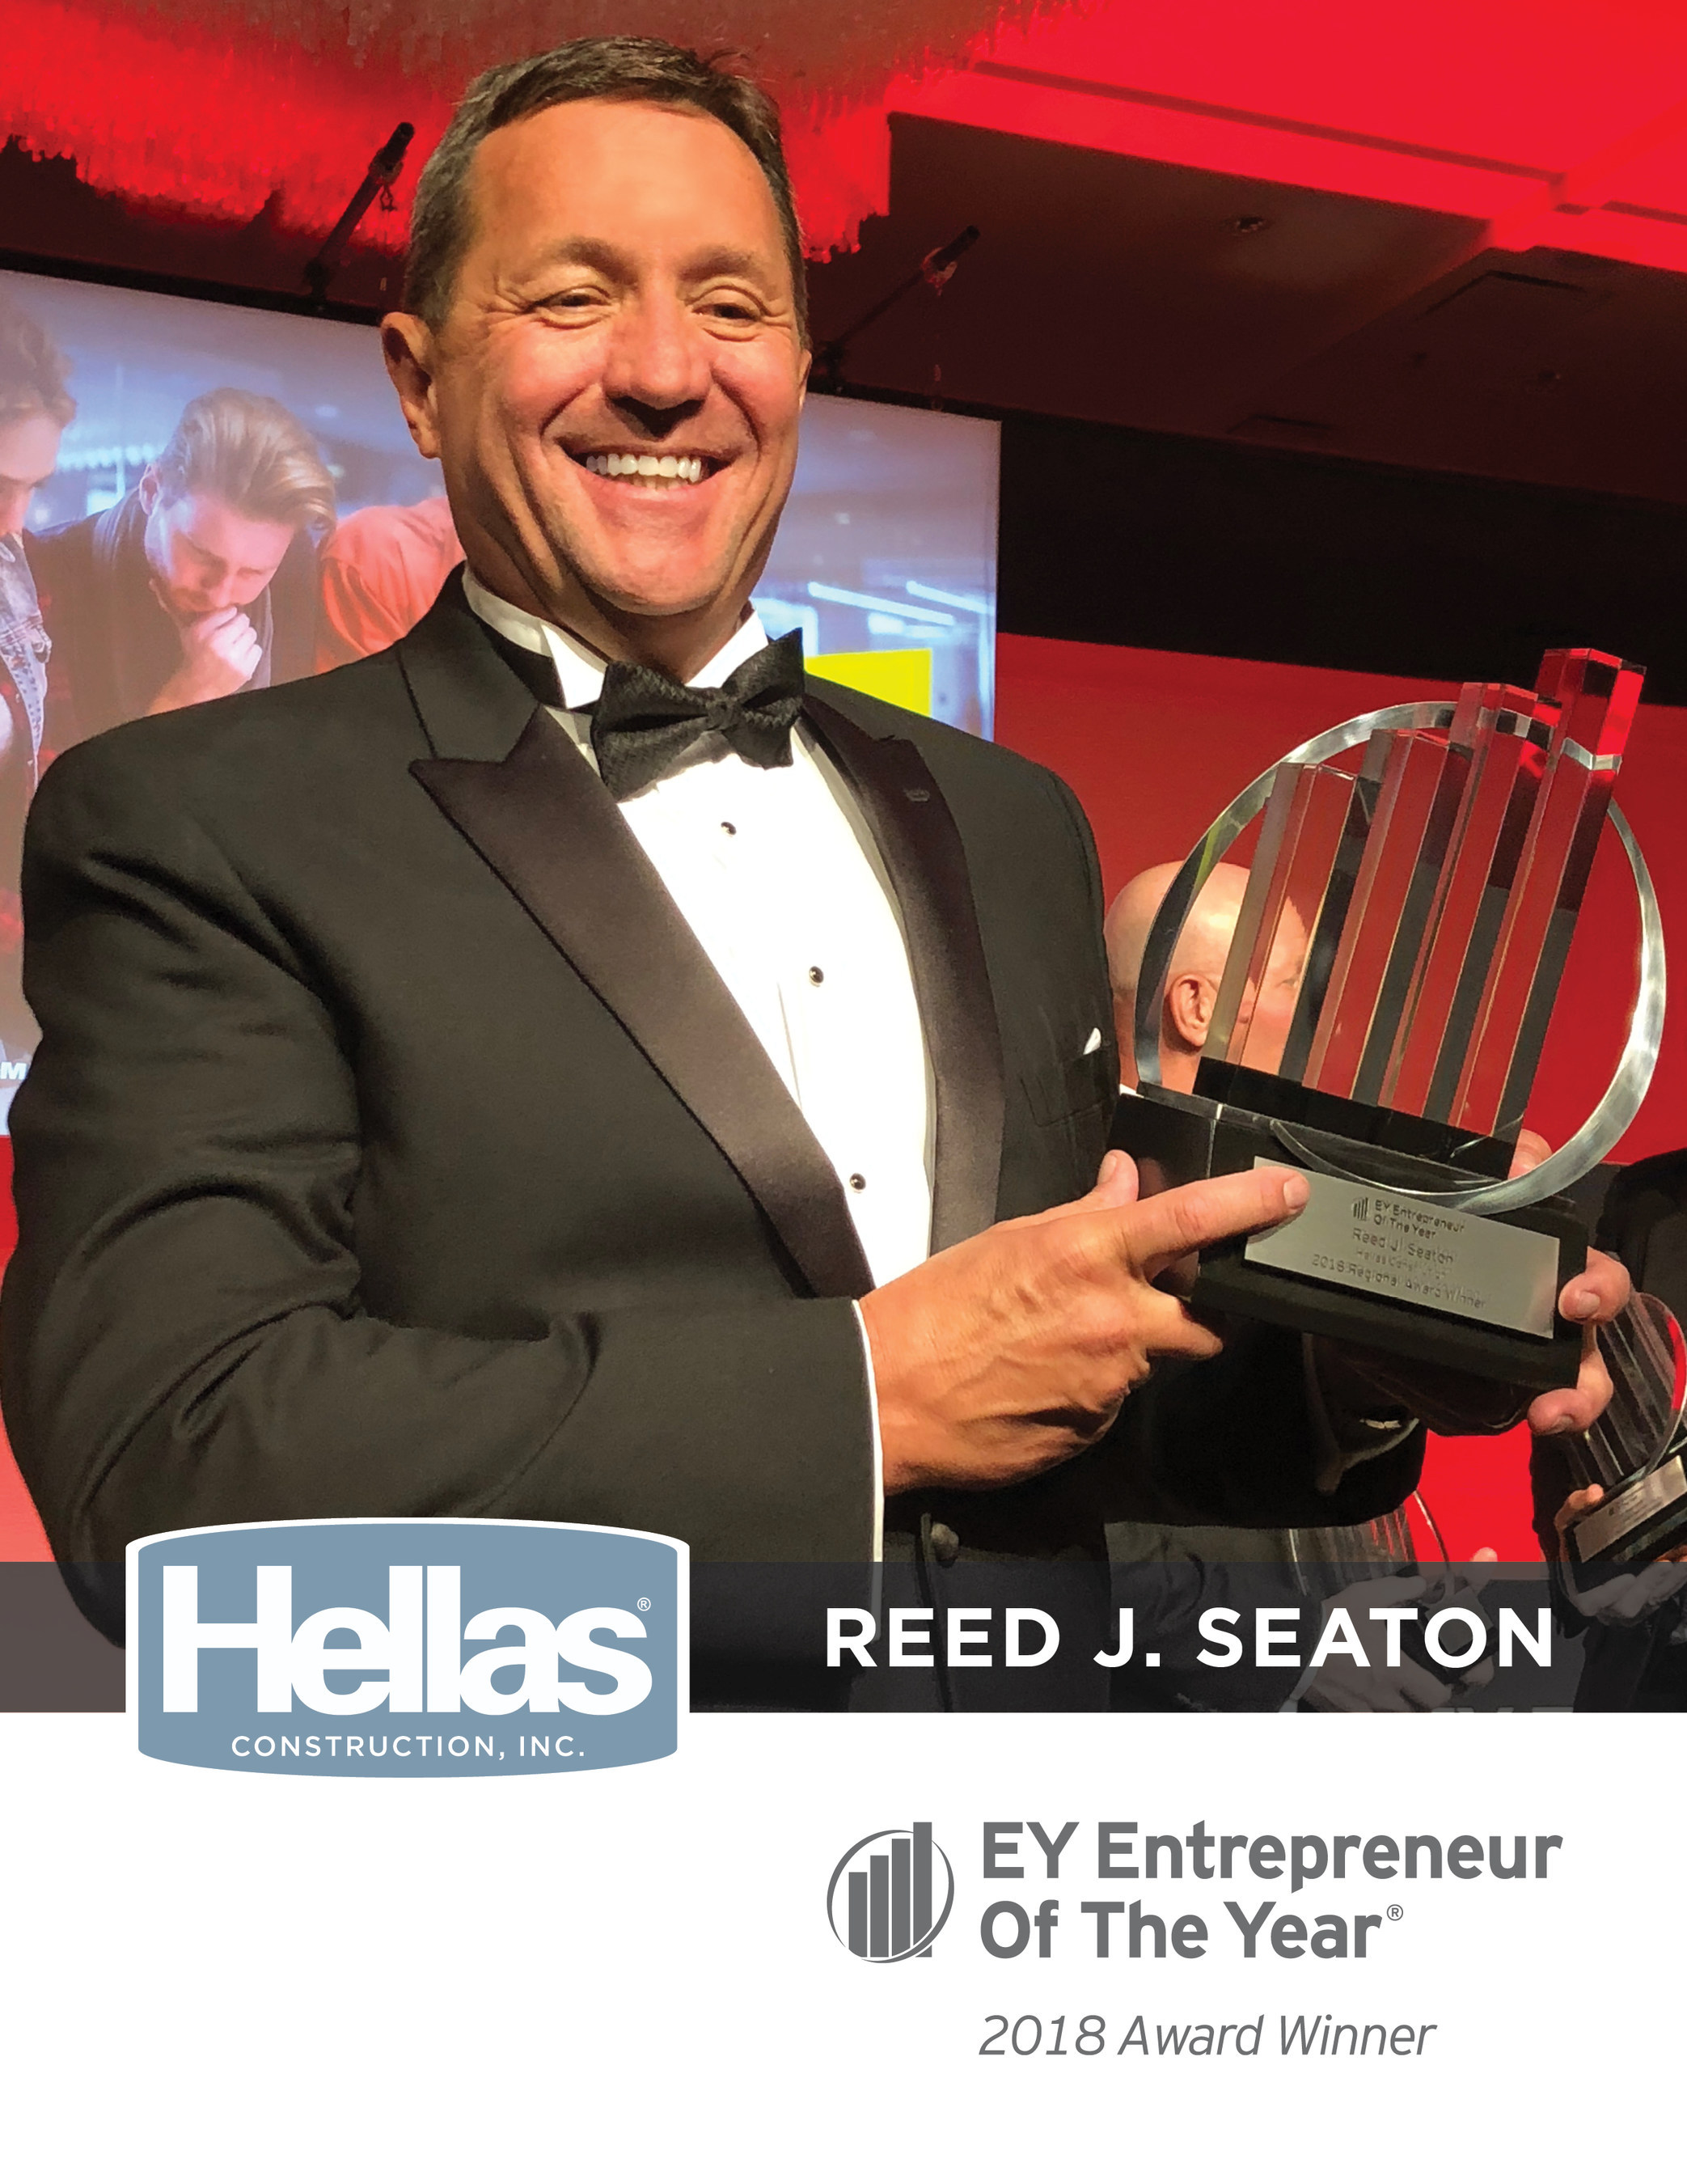 Ey Announces Reed J Seaton Of Hellas Construction Named Entrepreneur Of The Year 2018 Award Winner In Central Texas